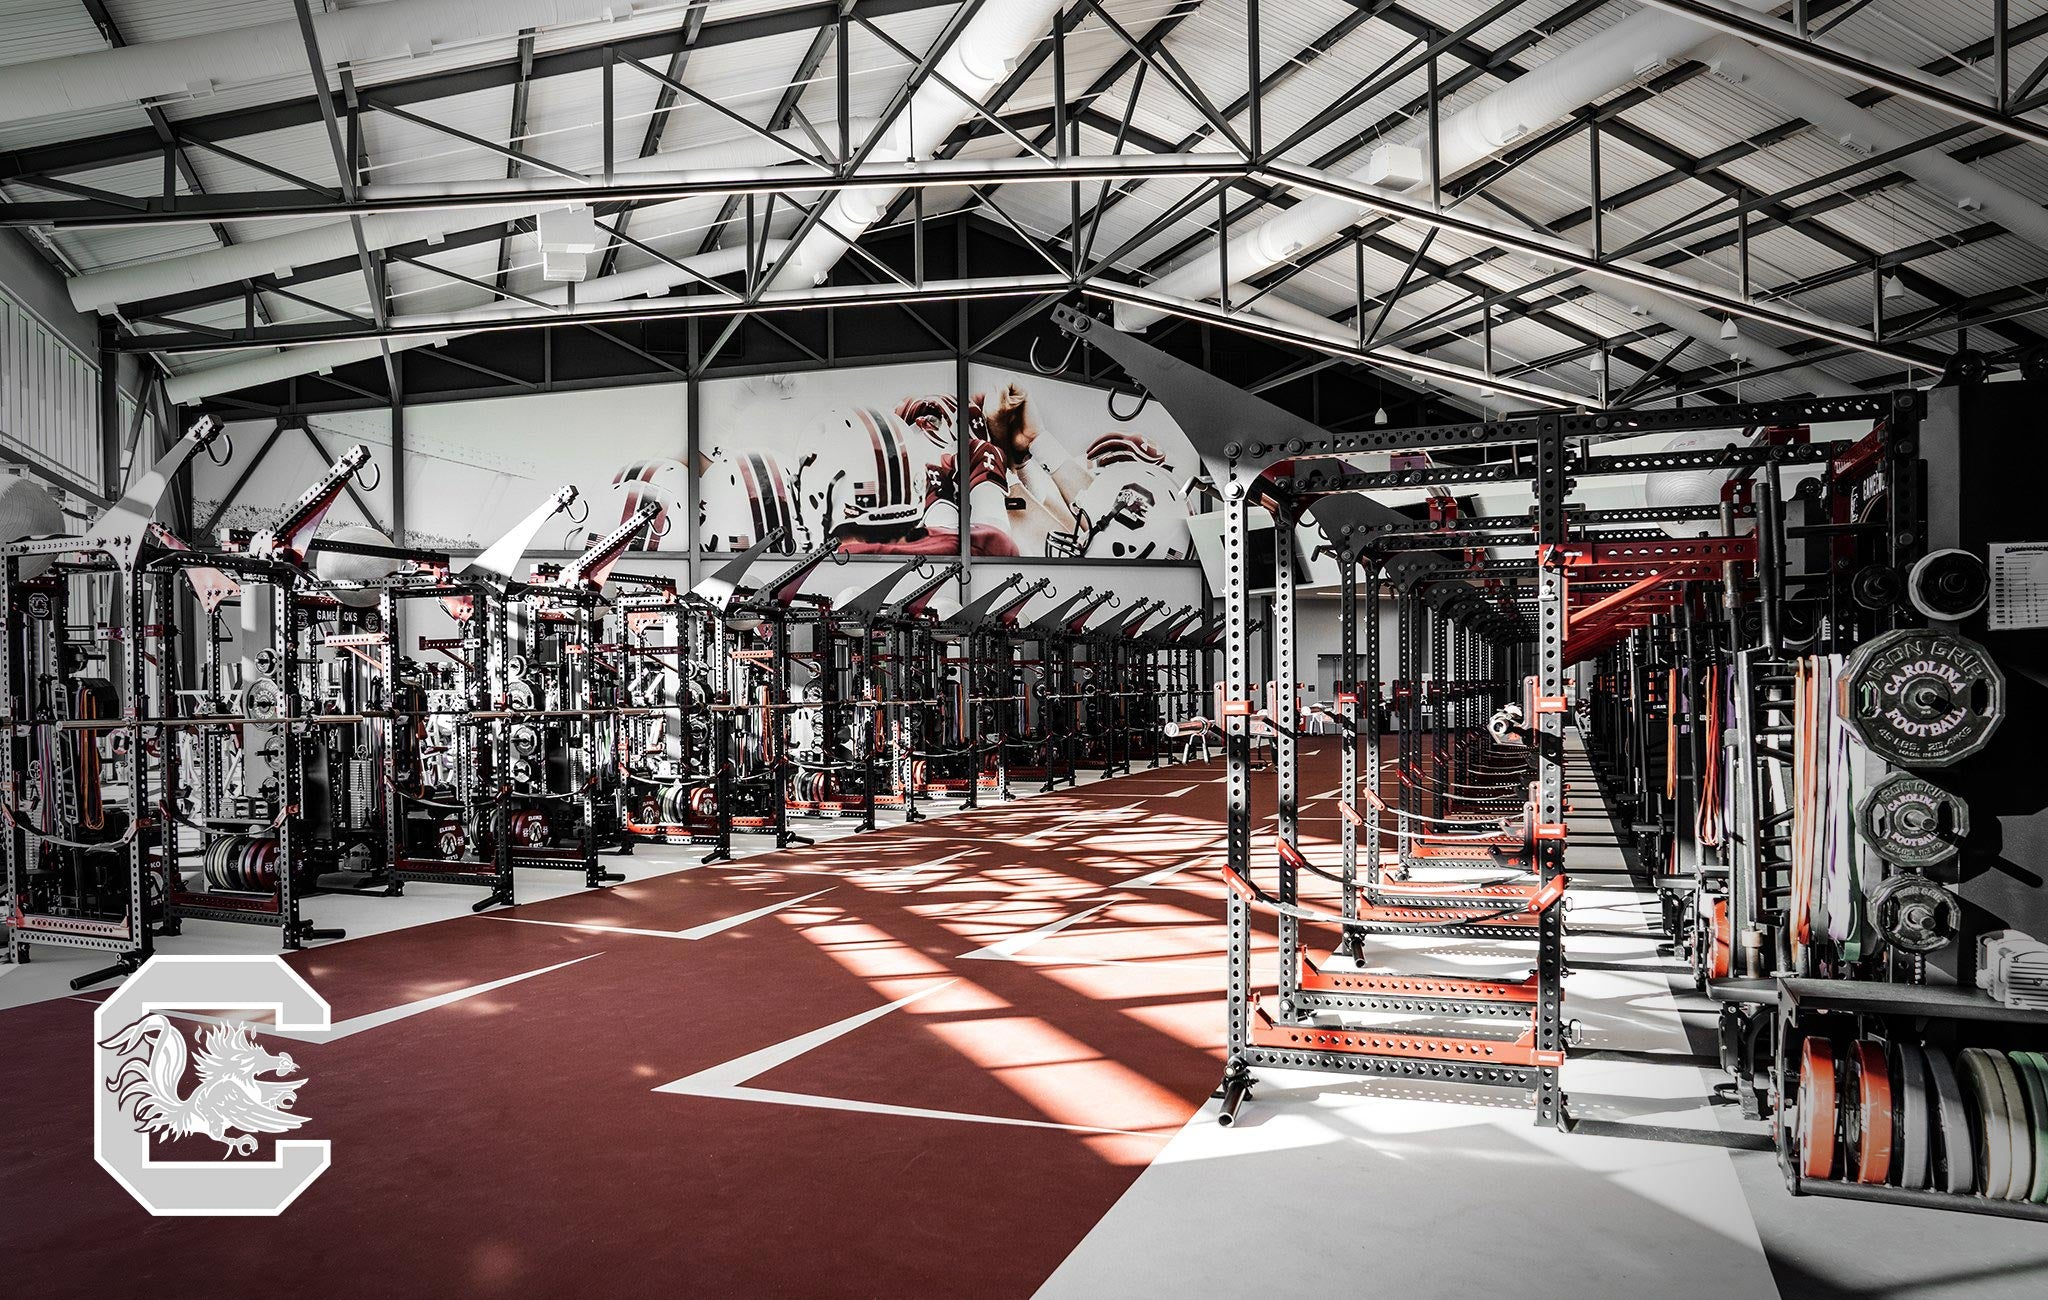 University of South carolina Sorinex strength and conditioning facility